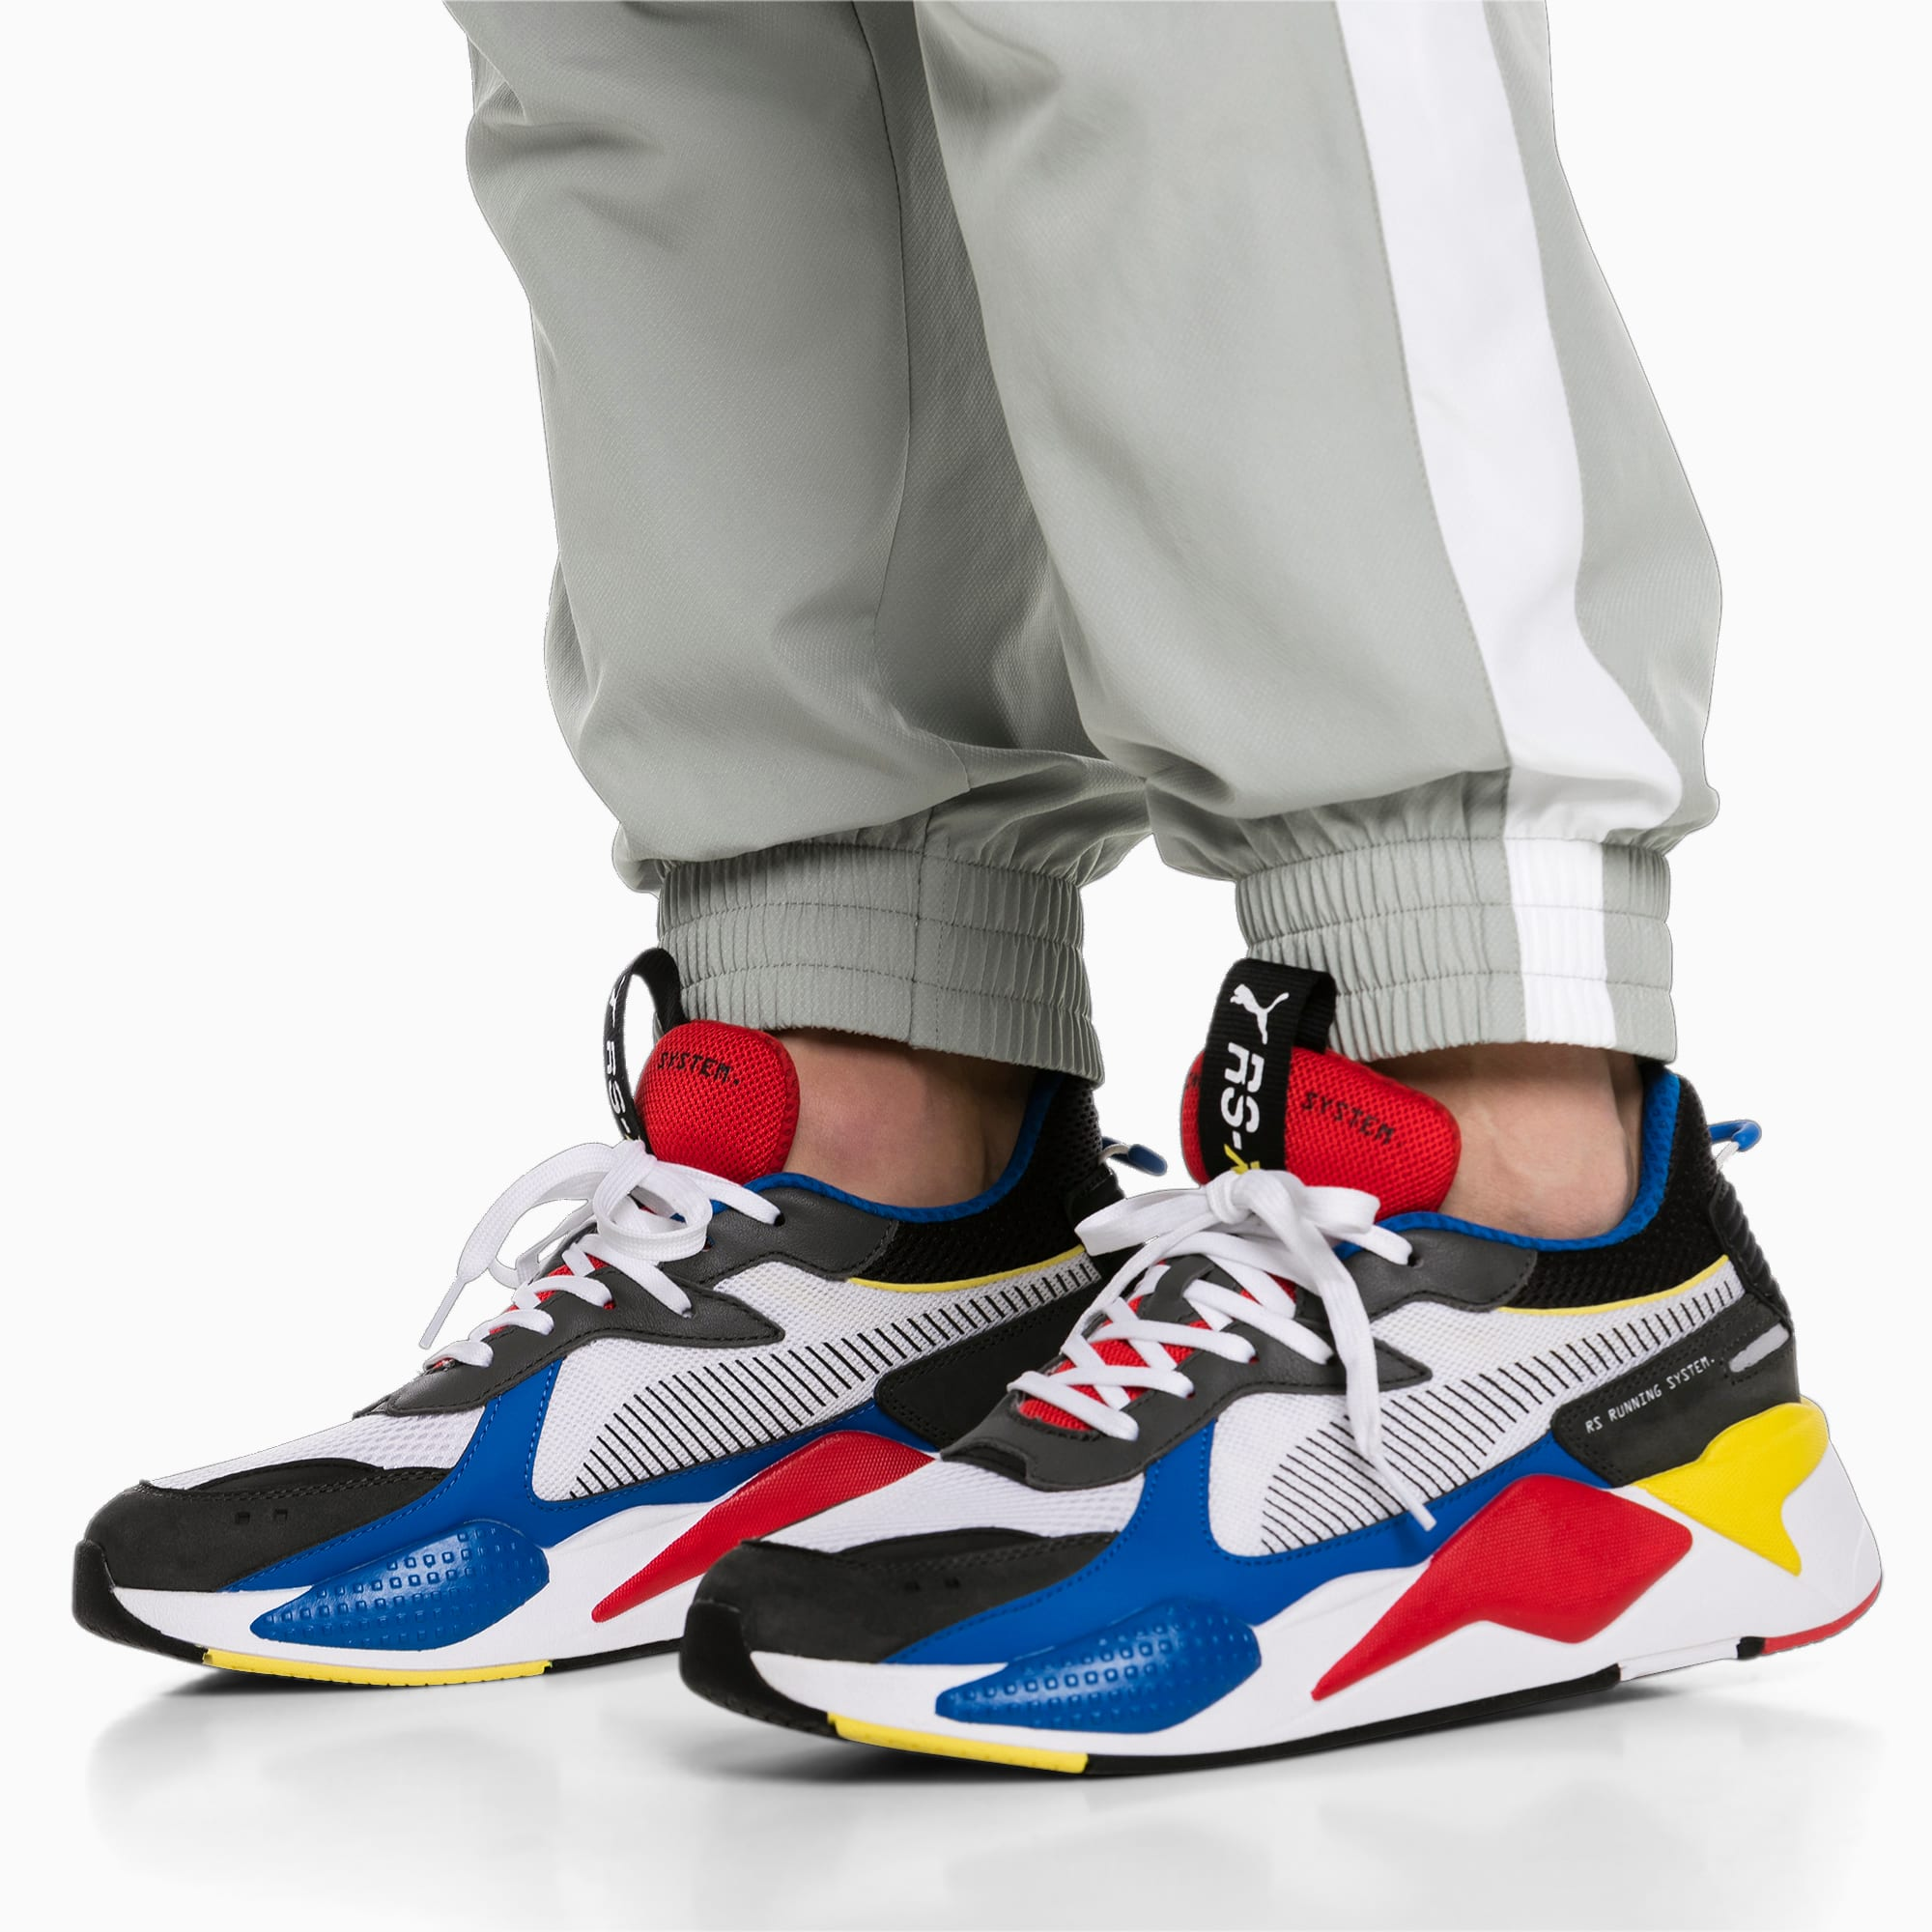 RS-X Toys Men's Sneakers